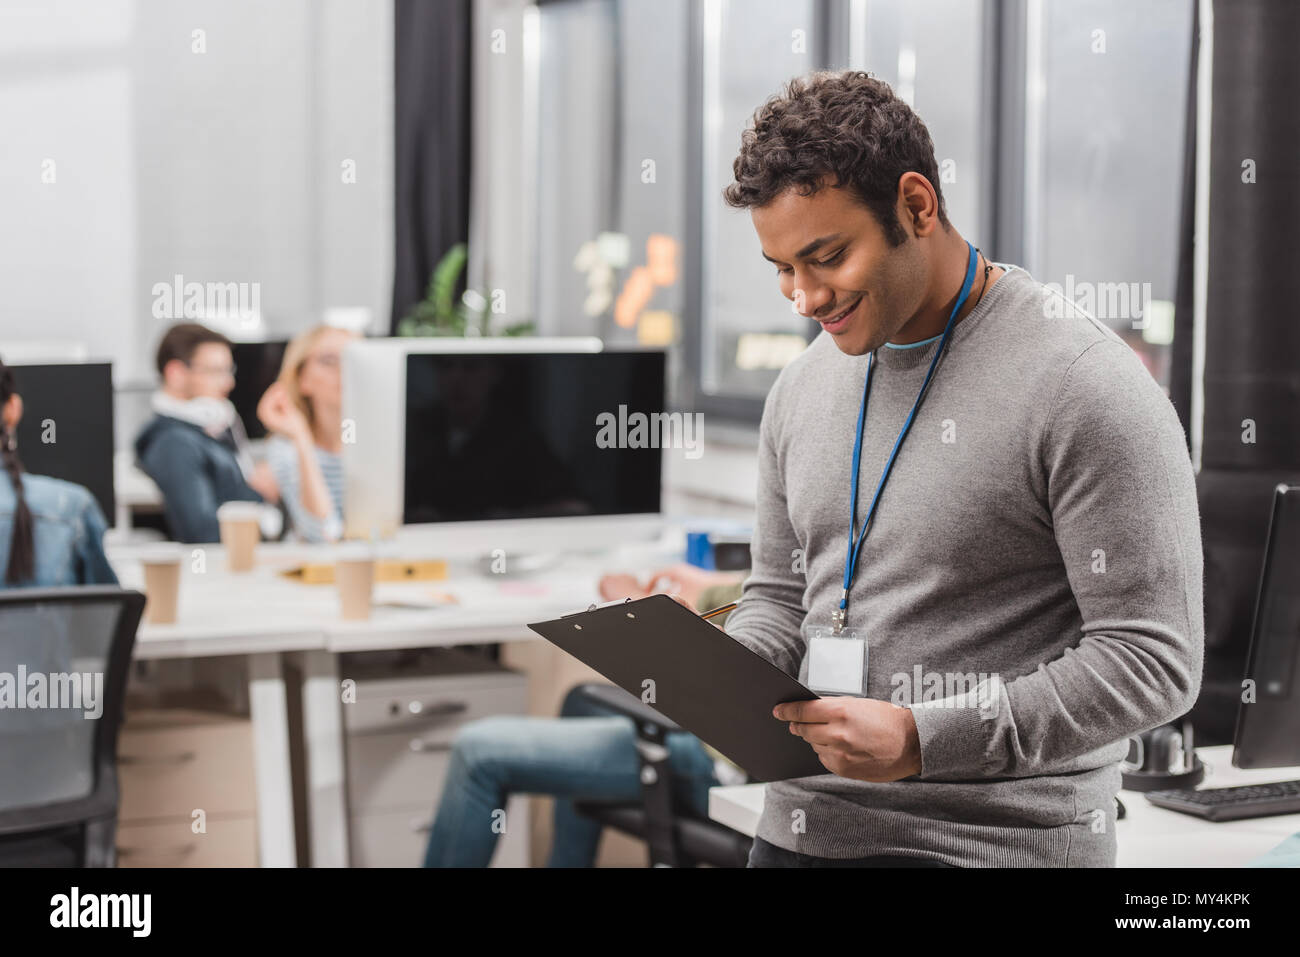 happy african american man with name tag writing something on planchette at modern office - Stock Image